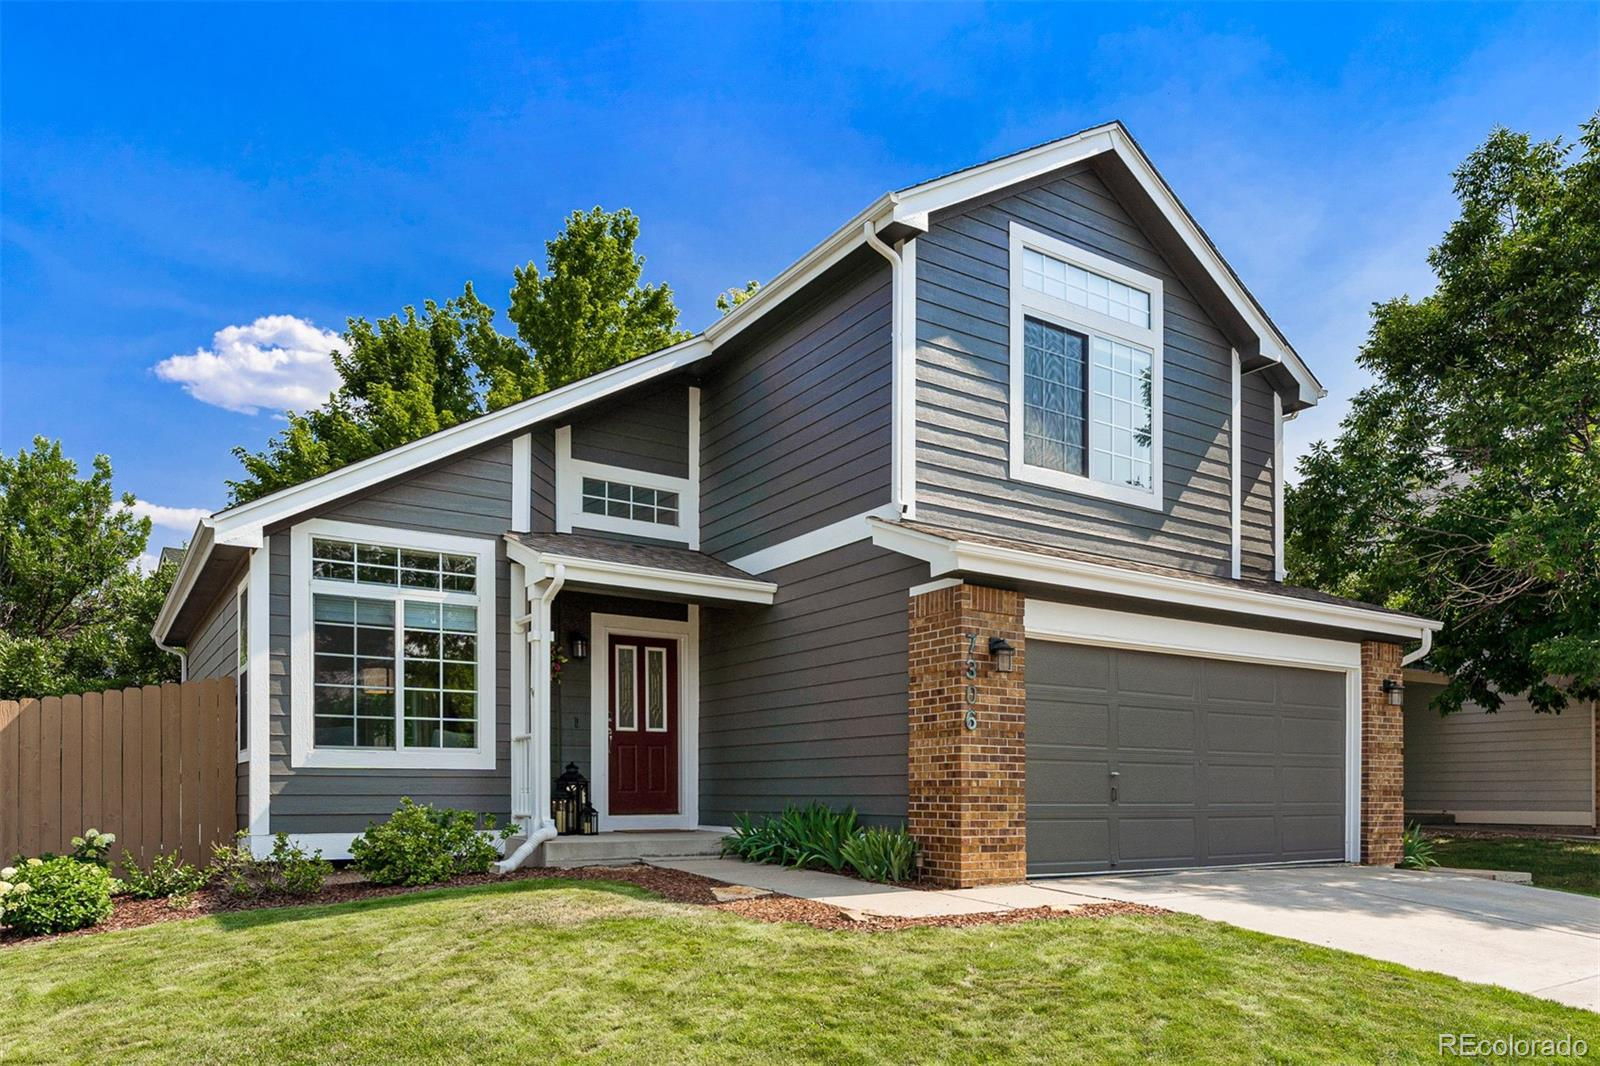 7306 W 97th Place, Westminster, CO 80021 - #: 7651753